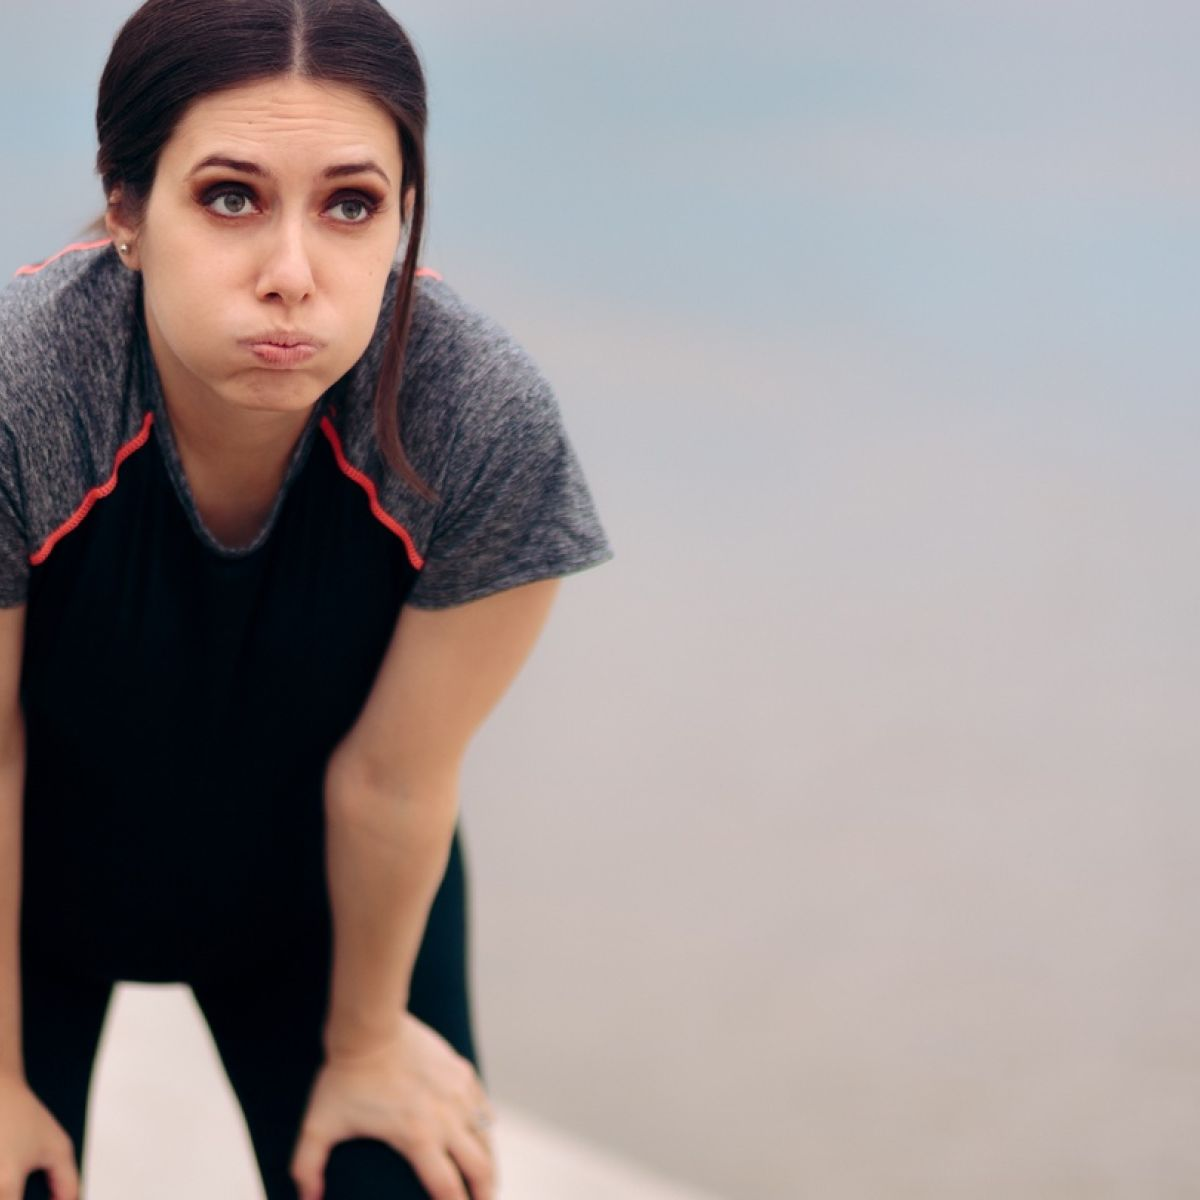 How to deal with your negative inner voice when running